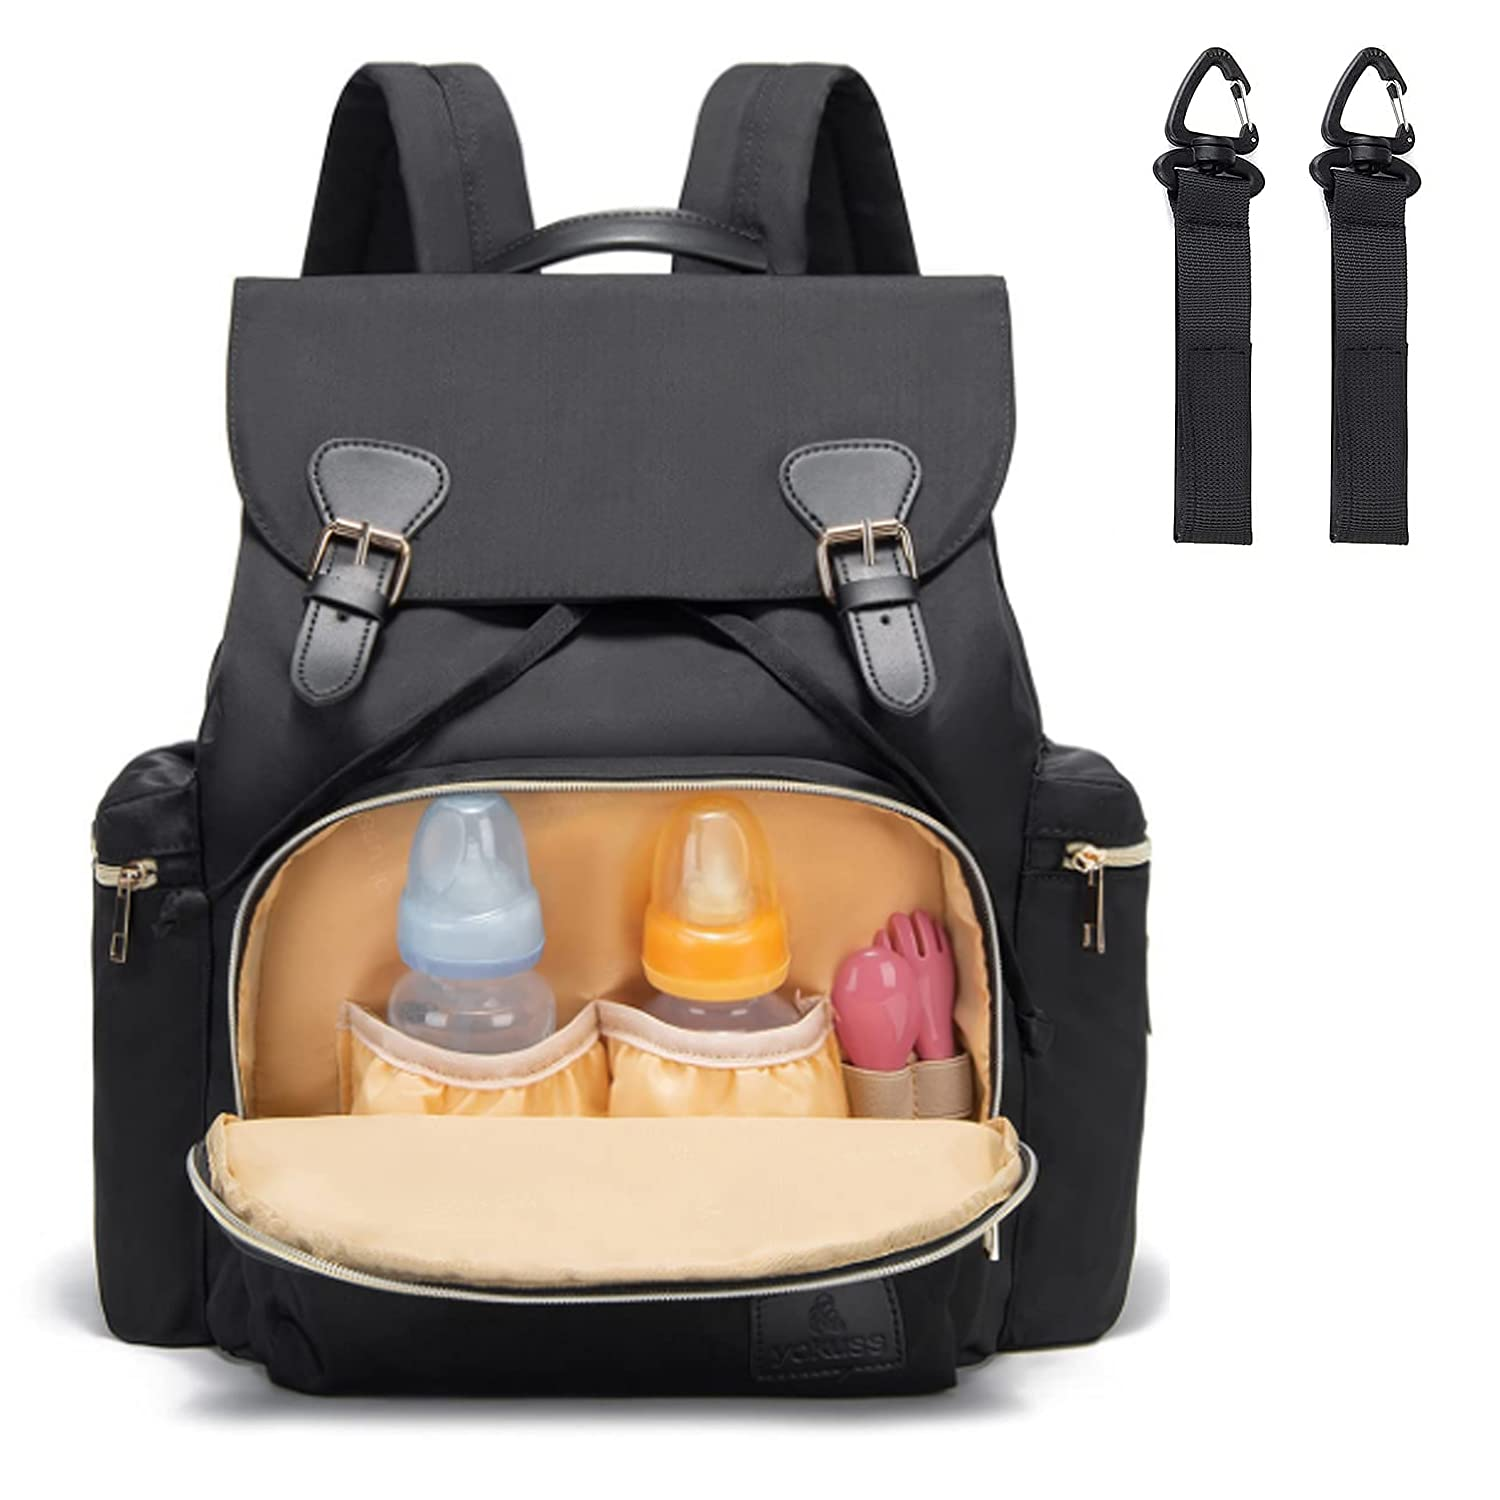 Diaper Bag Backpack, YaKuss Baby Bags Maternity Nappy Changing Bag for Mom and Dad Multifunction Waterproof Travel Back Pack, Large Capacity, Lightweight and Durable, Black